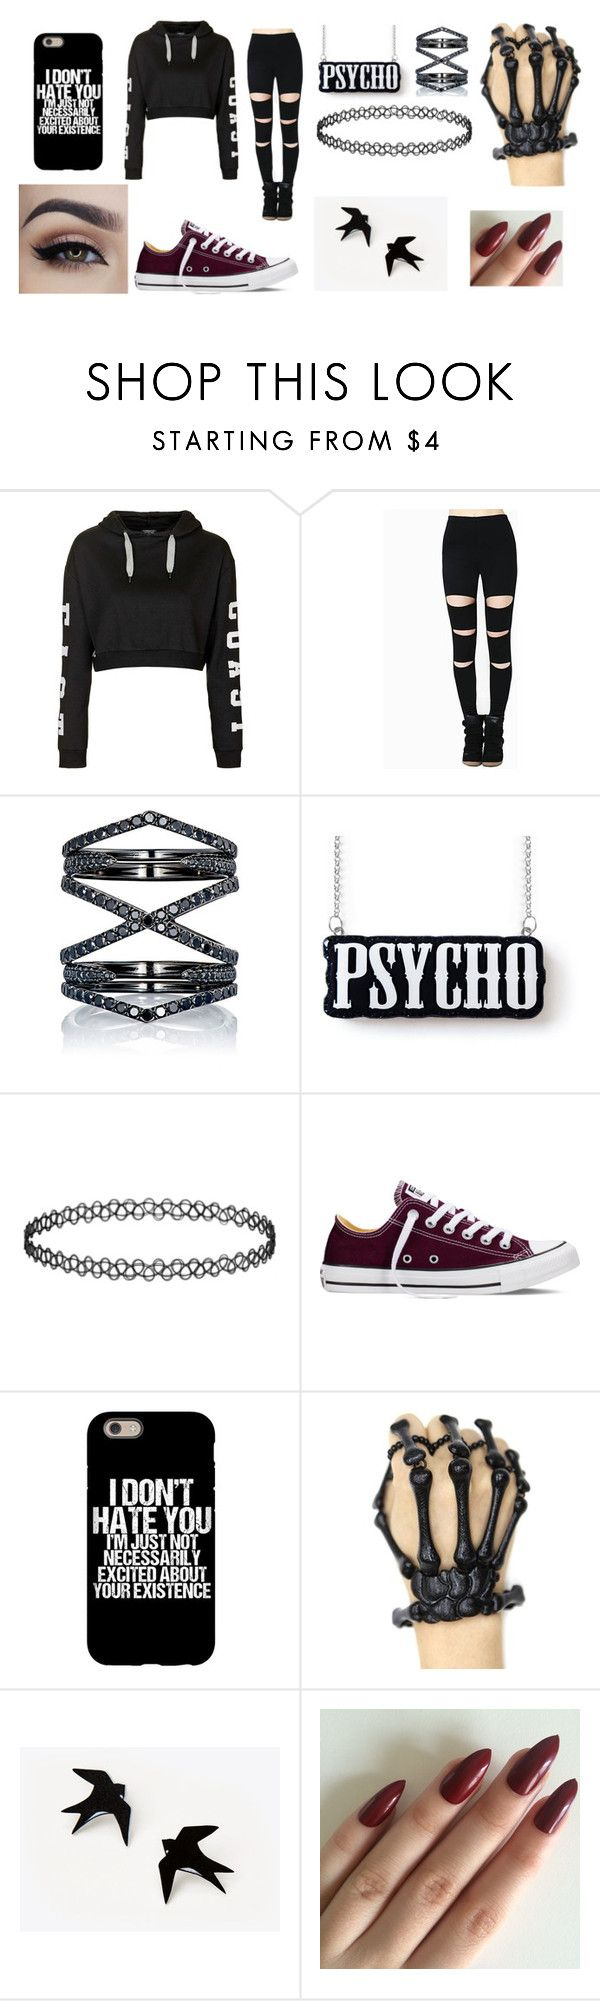 """Untitled #66"" by zahlia-tibbs on Polyvore featuring Topshop, Eva Fehren and Converse"